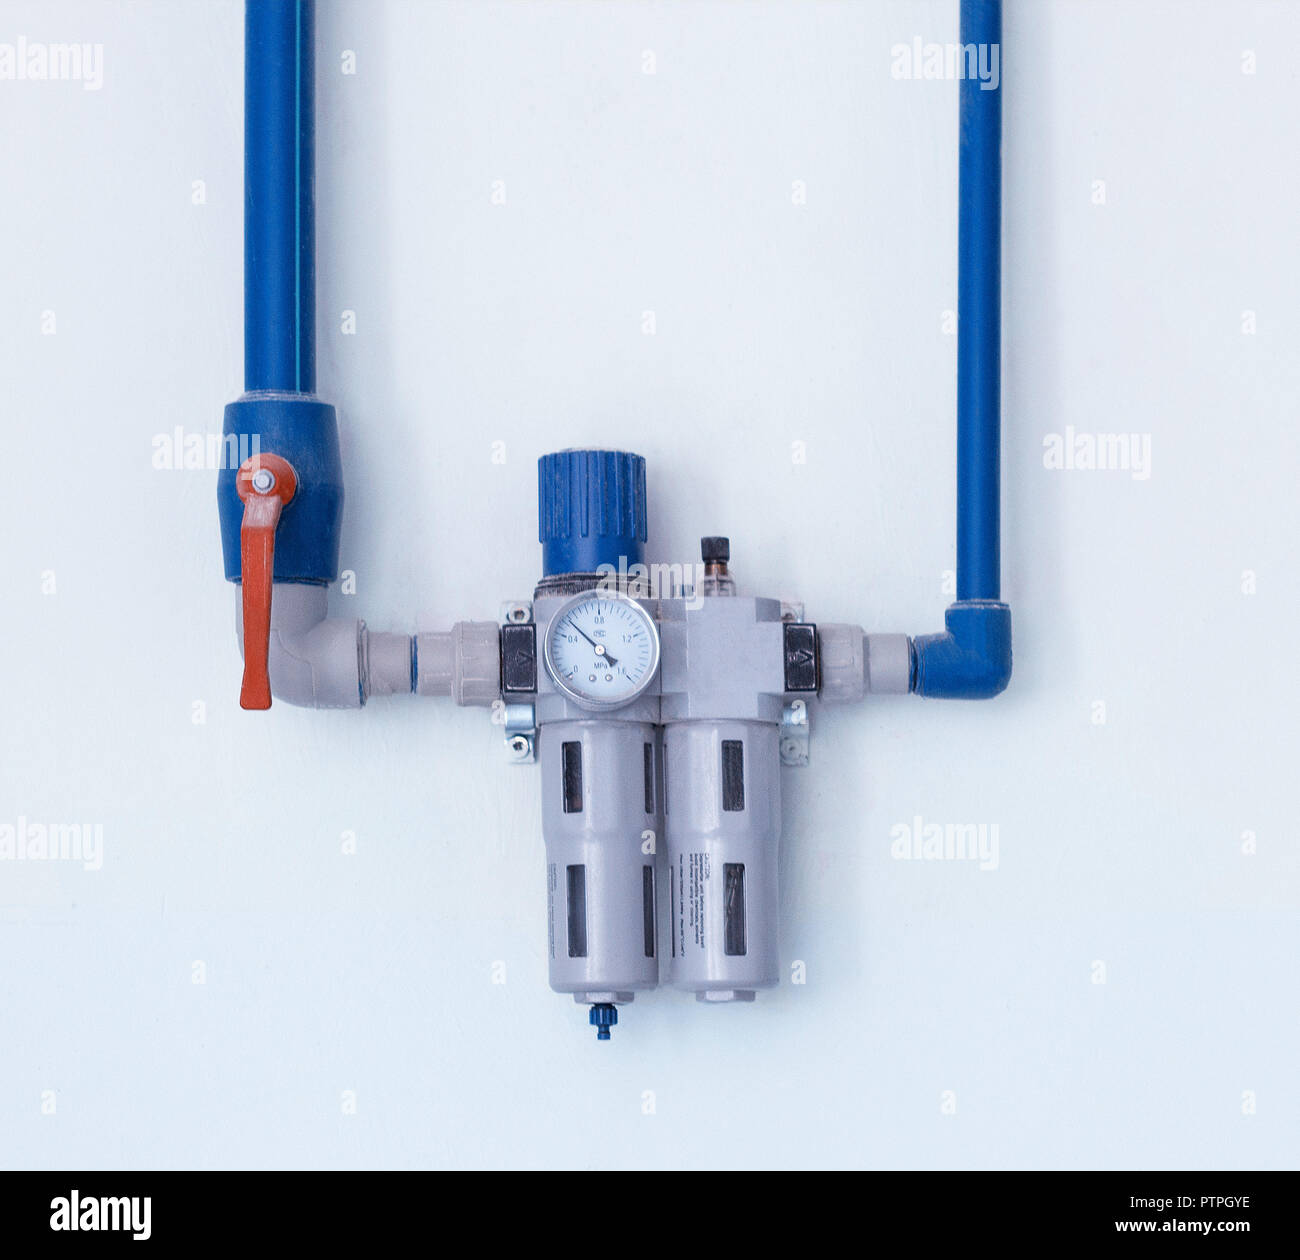 A modern filter with a water gauge for cleaning from debris and heavy metals, located on the wall, a water pipe, water purification - Stock Image